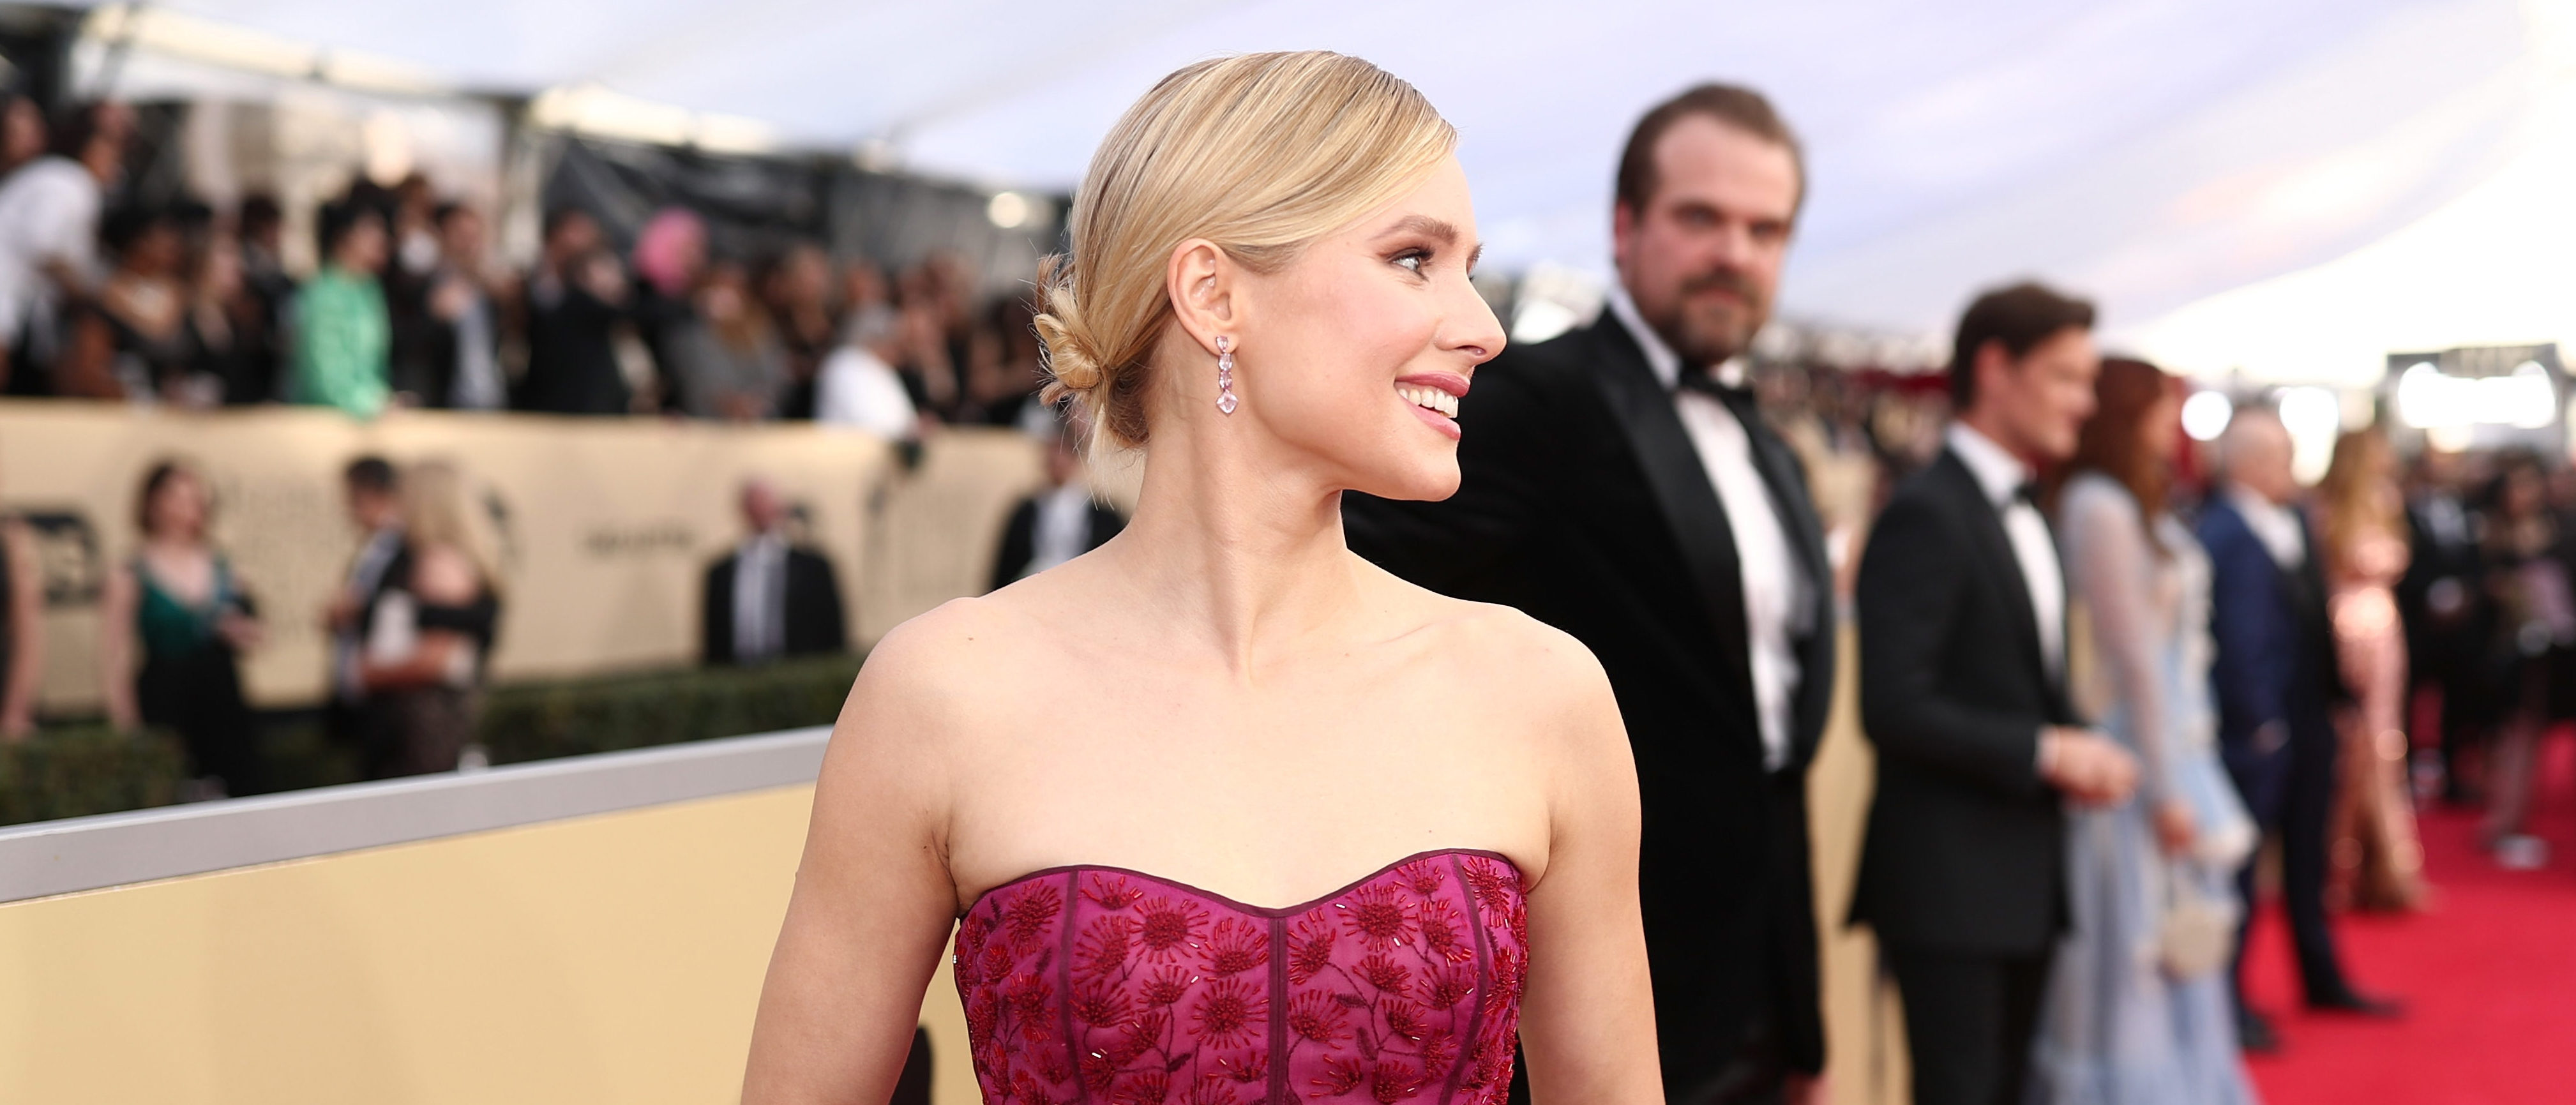 LOS ANGELES, CA - JANUARY 21:  Actor Kristen Bell attends the 24th Annual Screen Actors Guild Awards at The Shrine Auditorium on January 21, 2018 in Los Angeles, California. 27522_010  (Photo by Christopher Polk/Getty Images for Turner Image)